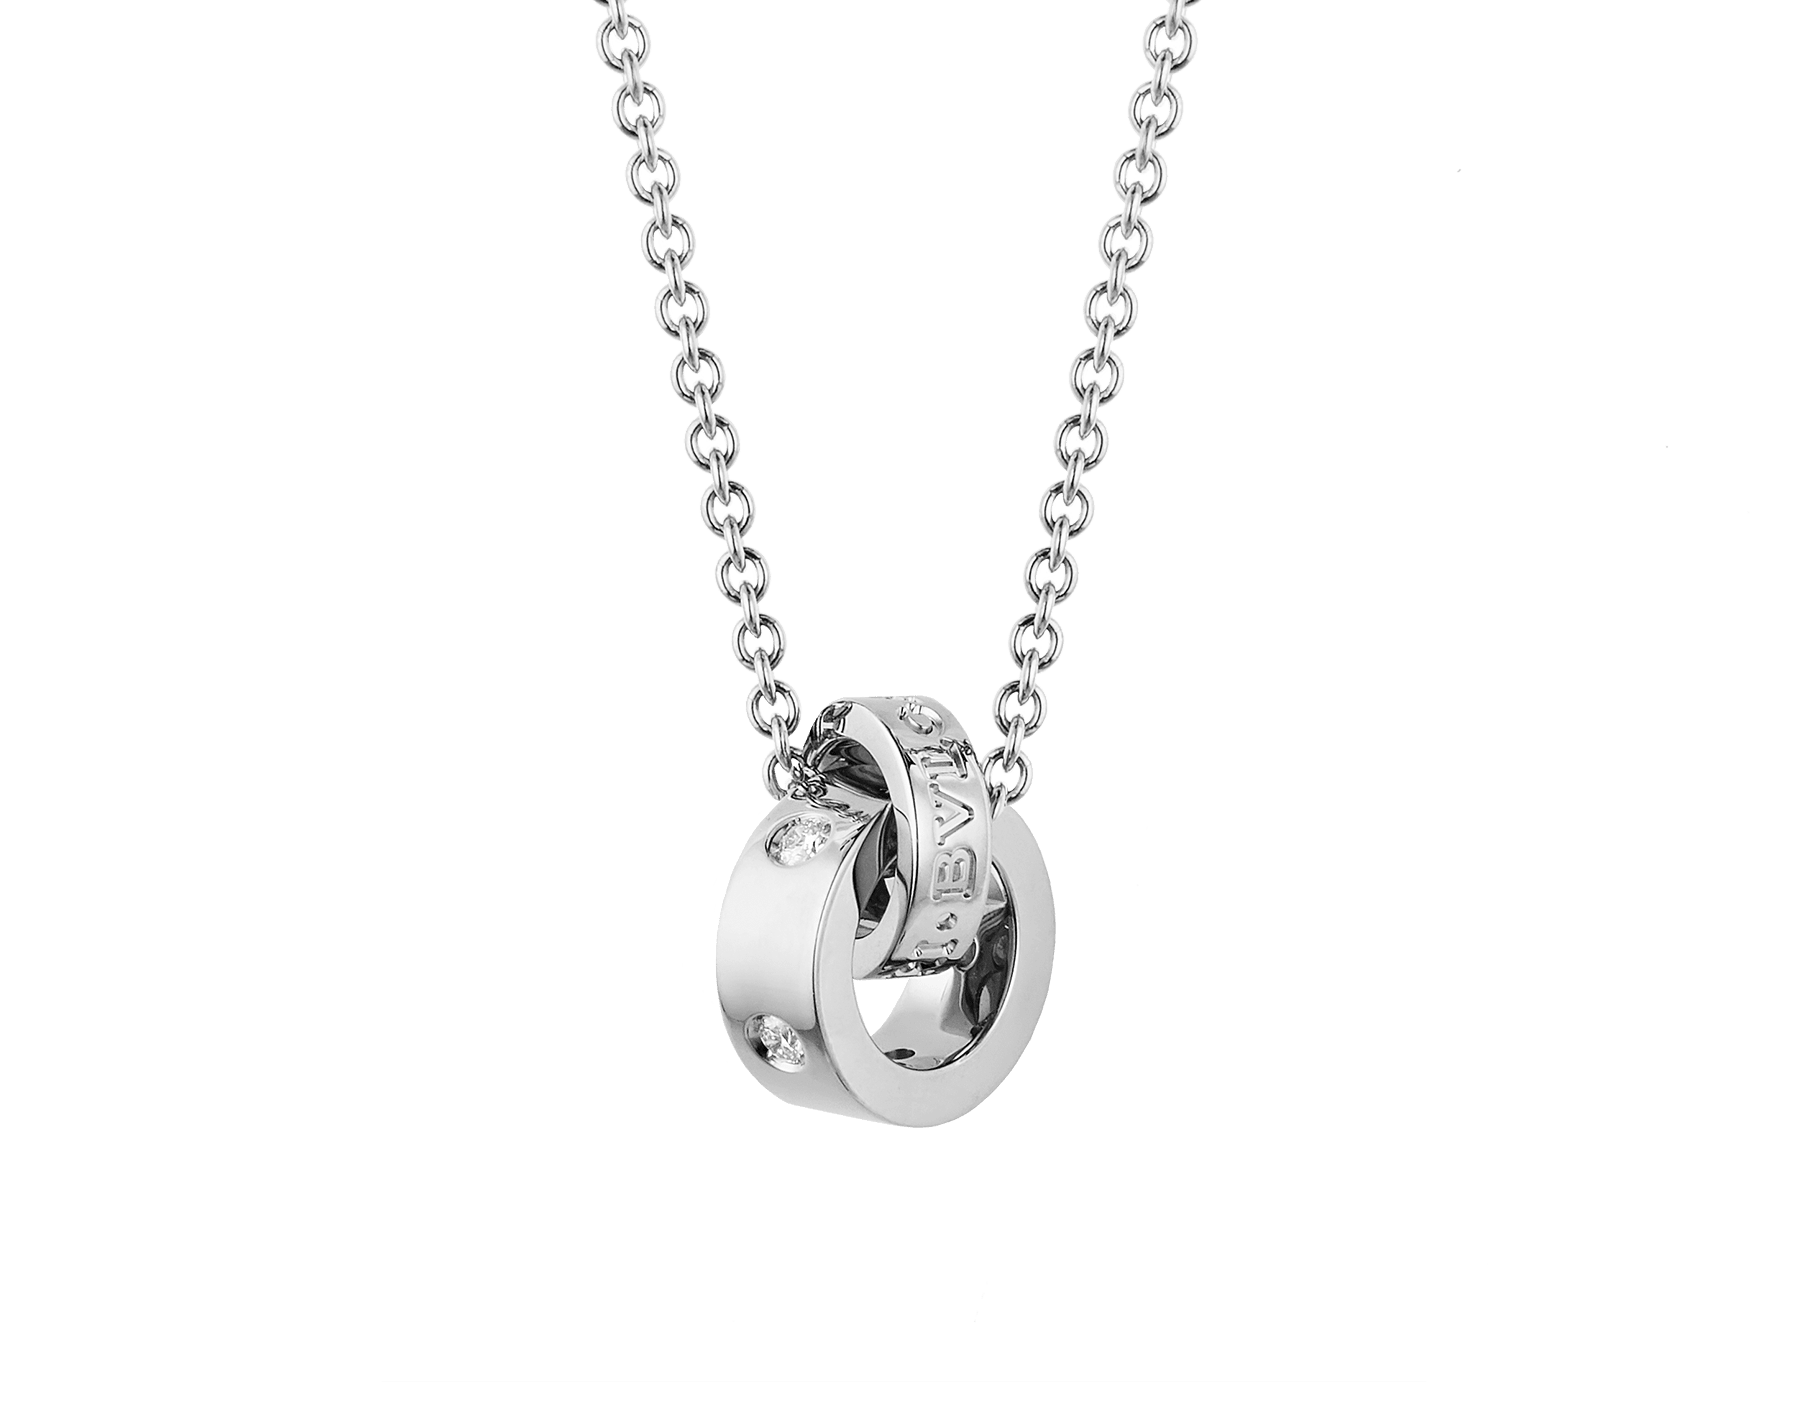 BVLGARI BVLGARI necklace with 18 kt white gold chain and 18 kt white gold pendant set with five diamonds (0.15 ct) 354029 image 1